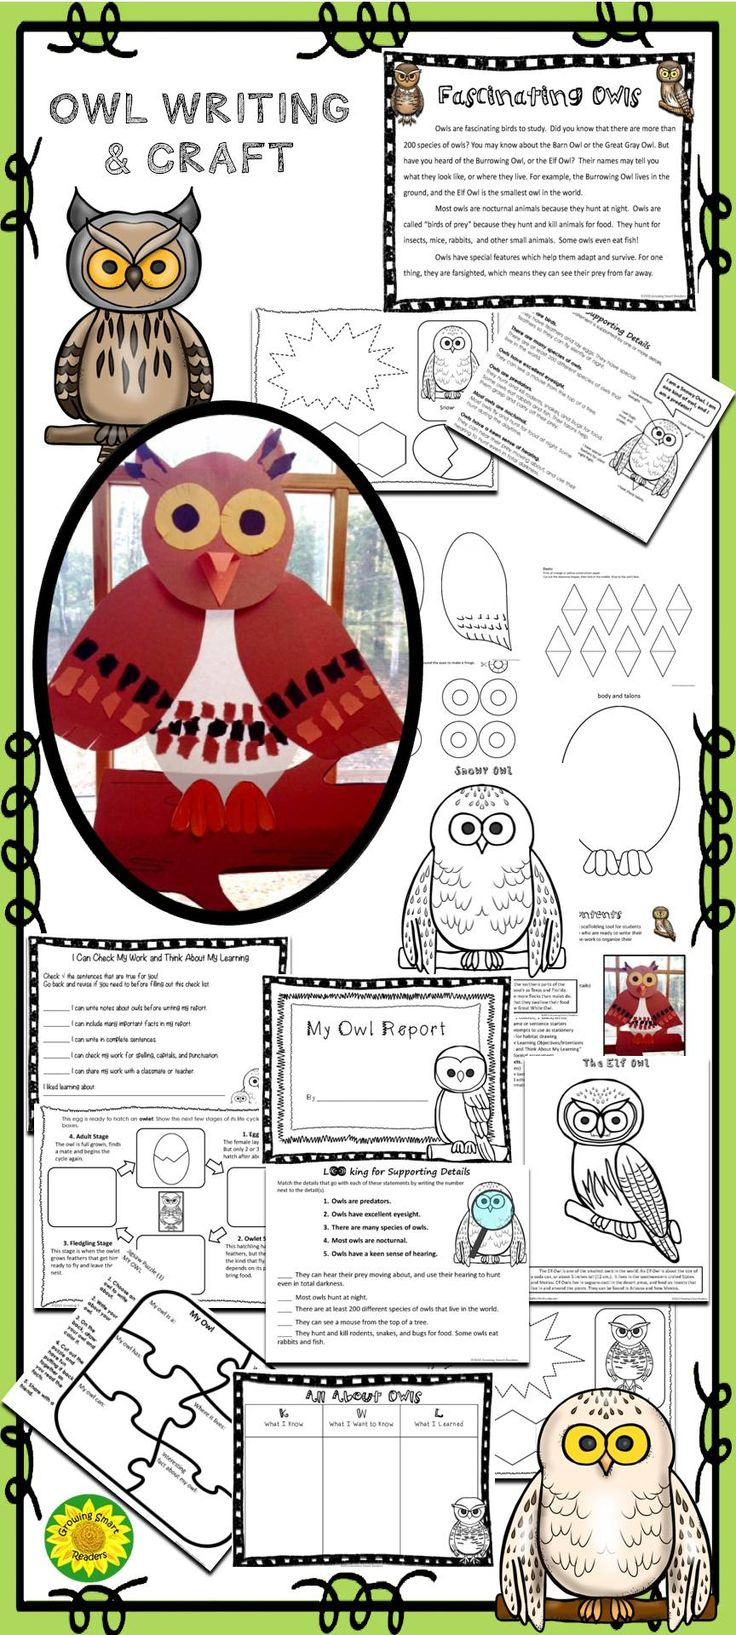 Read facts about owls, write about owls, and make a fun Long-Eared Owl! With a 2-page informational reading passage, owl pattern and report writing templates! This owl writing packet should be helpful as a scaffolding tool for students who are hesitant about writing, and for those who are ready to write their first short report. This will give them the frame-work to organize their thinking in complete sentences.